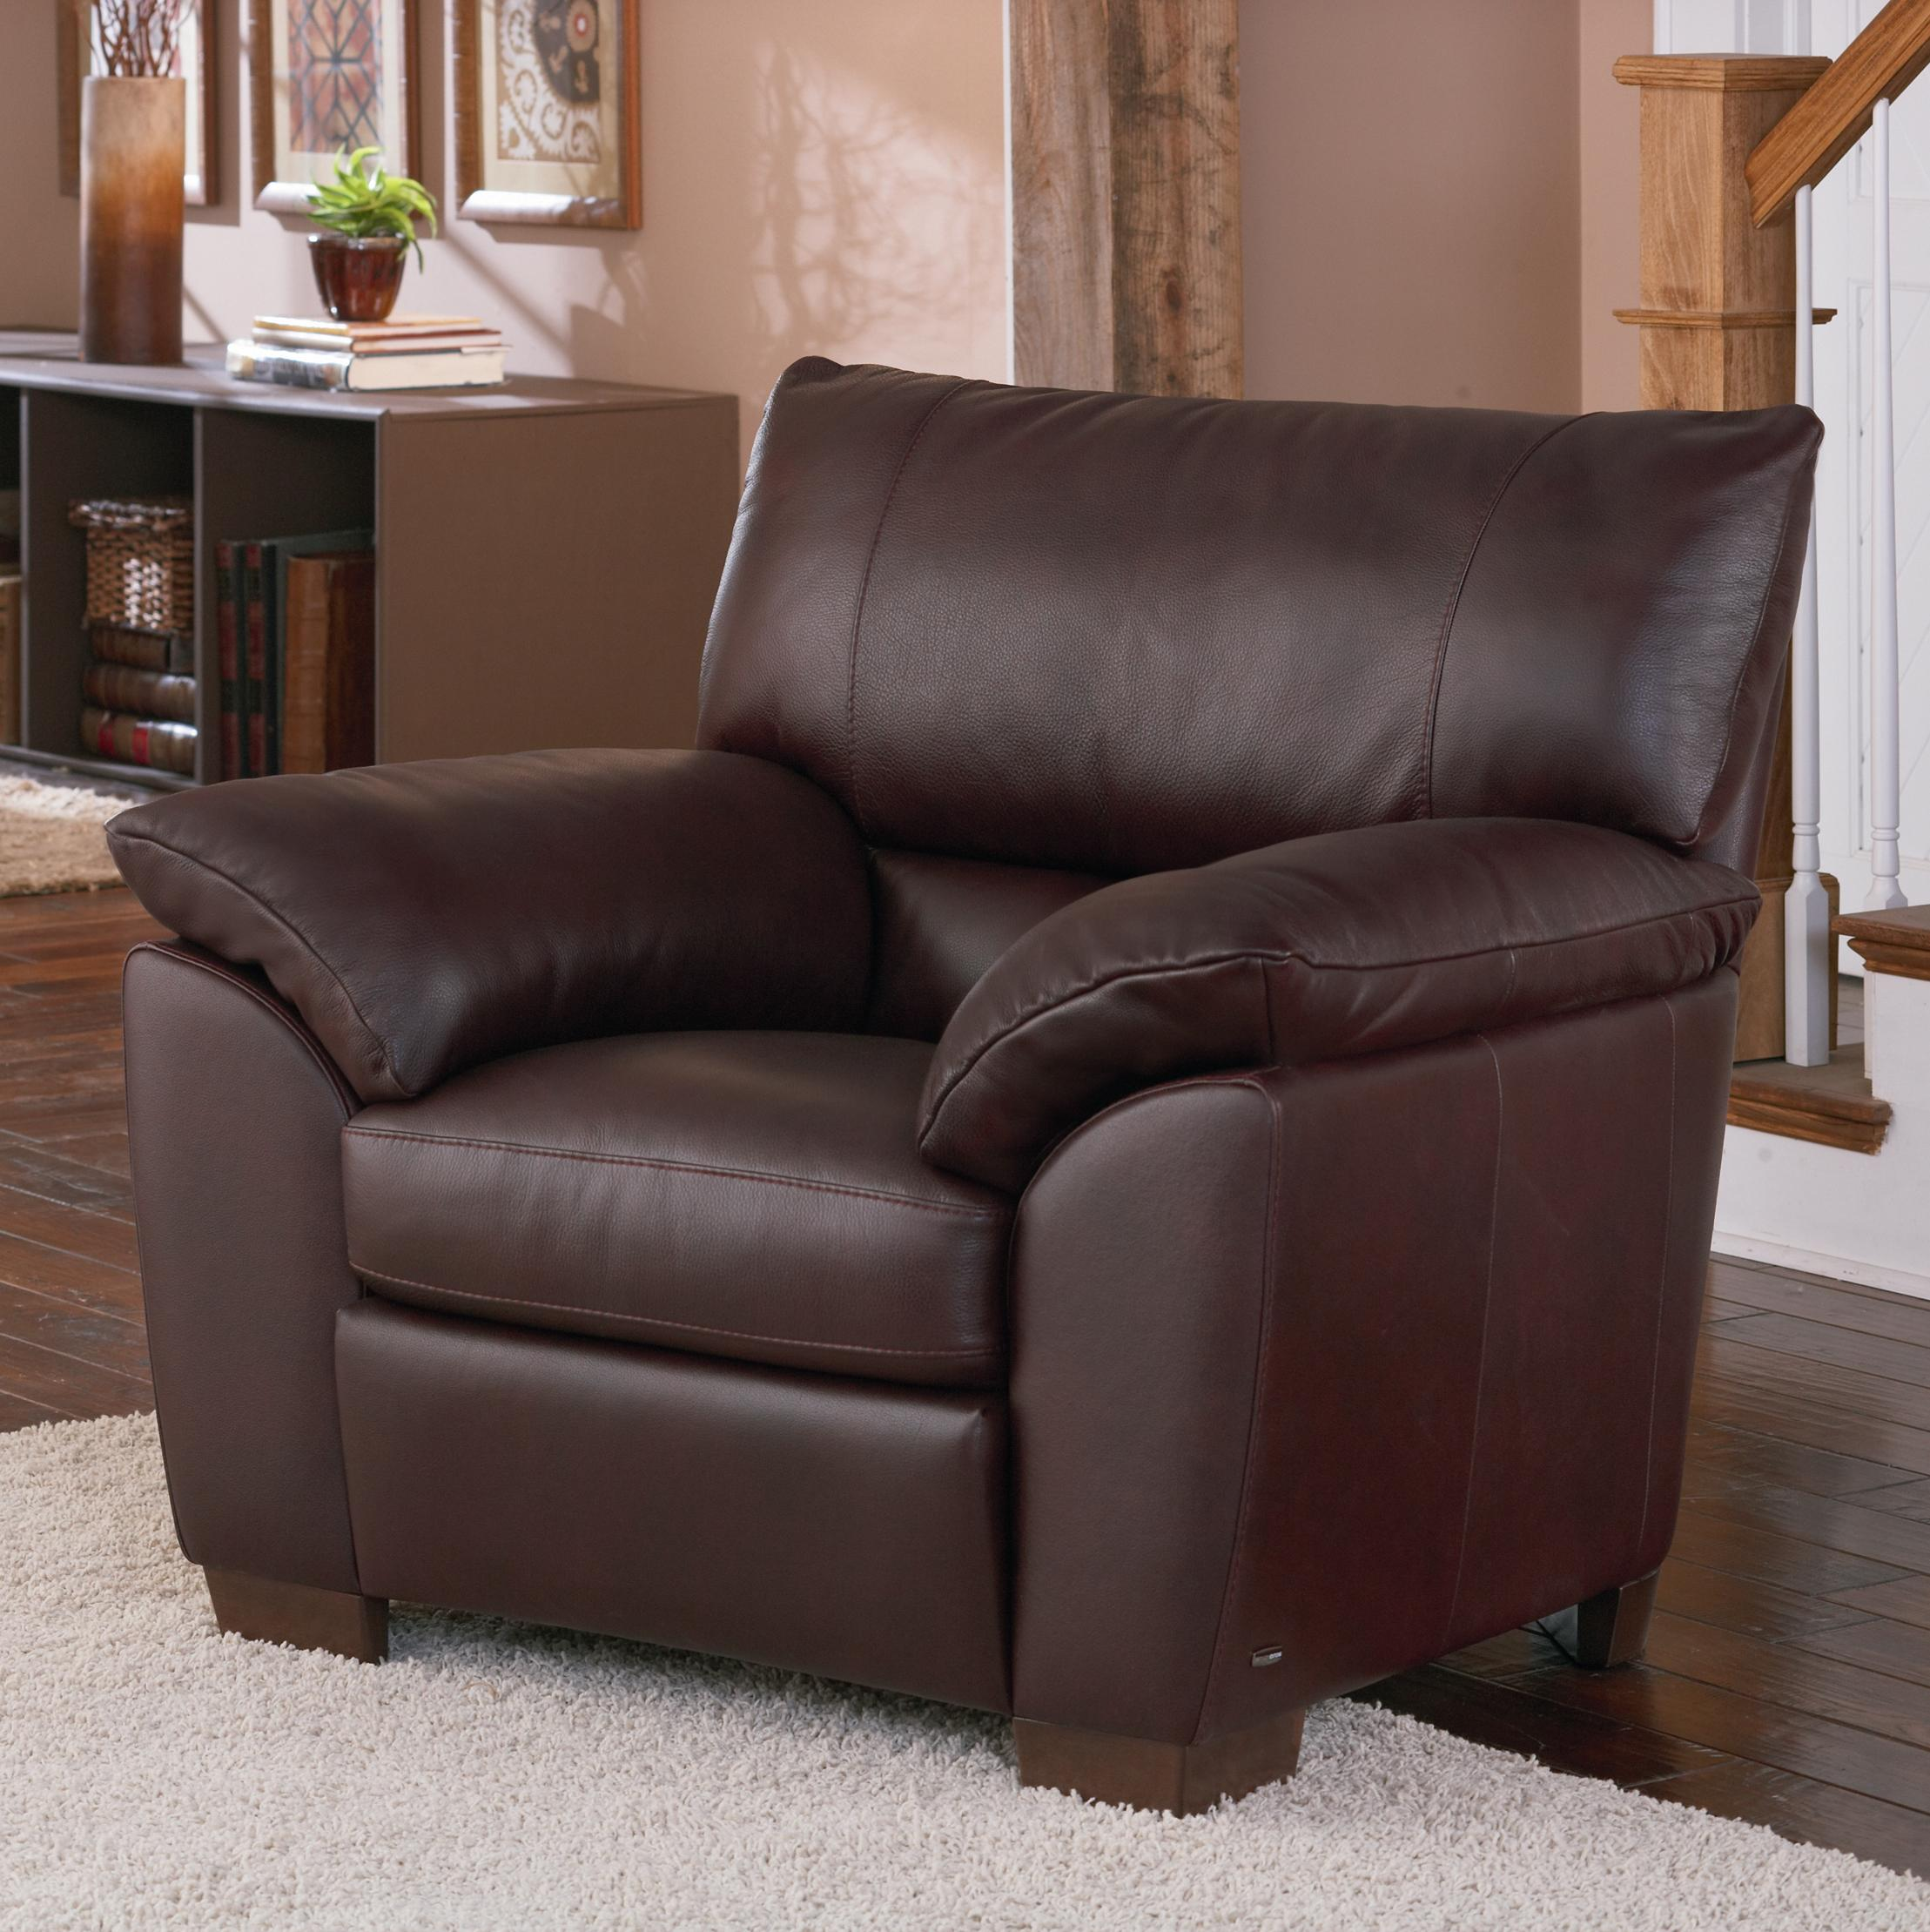 Natuzzi Editions B632 Leather Chair - Item Number: B632-003